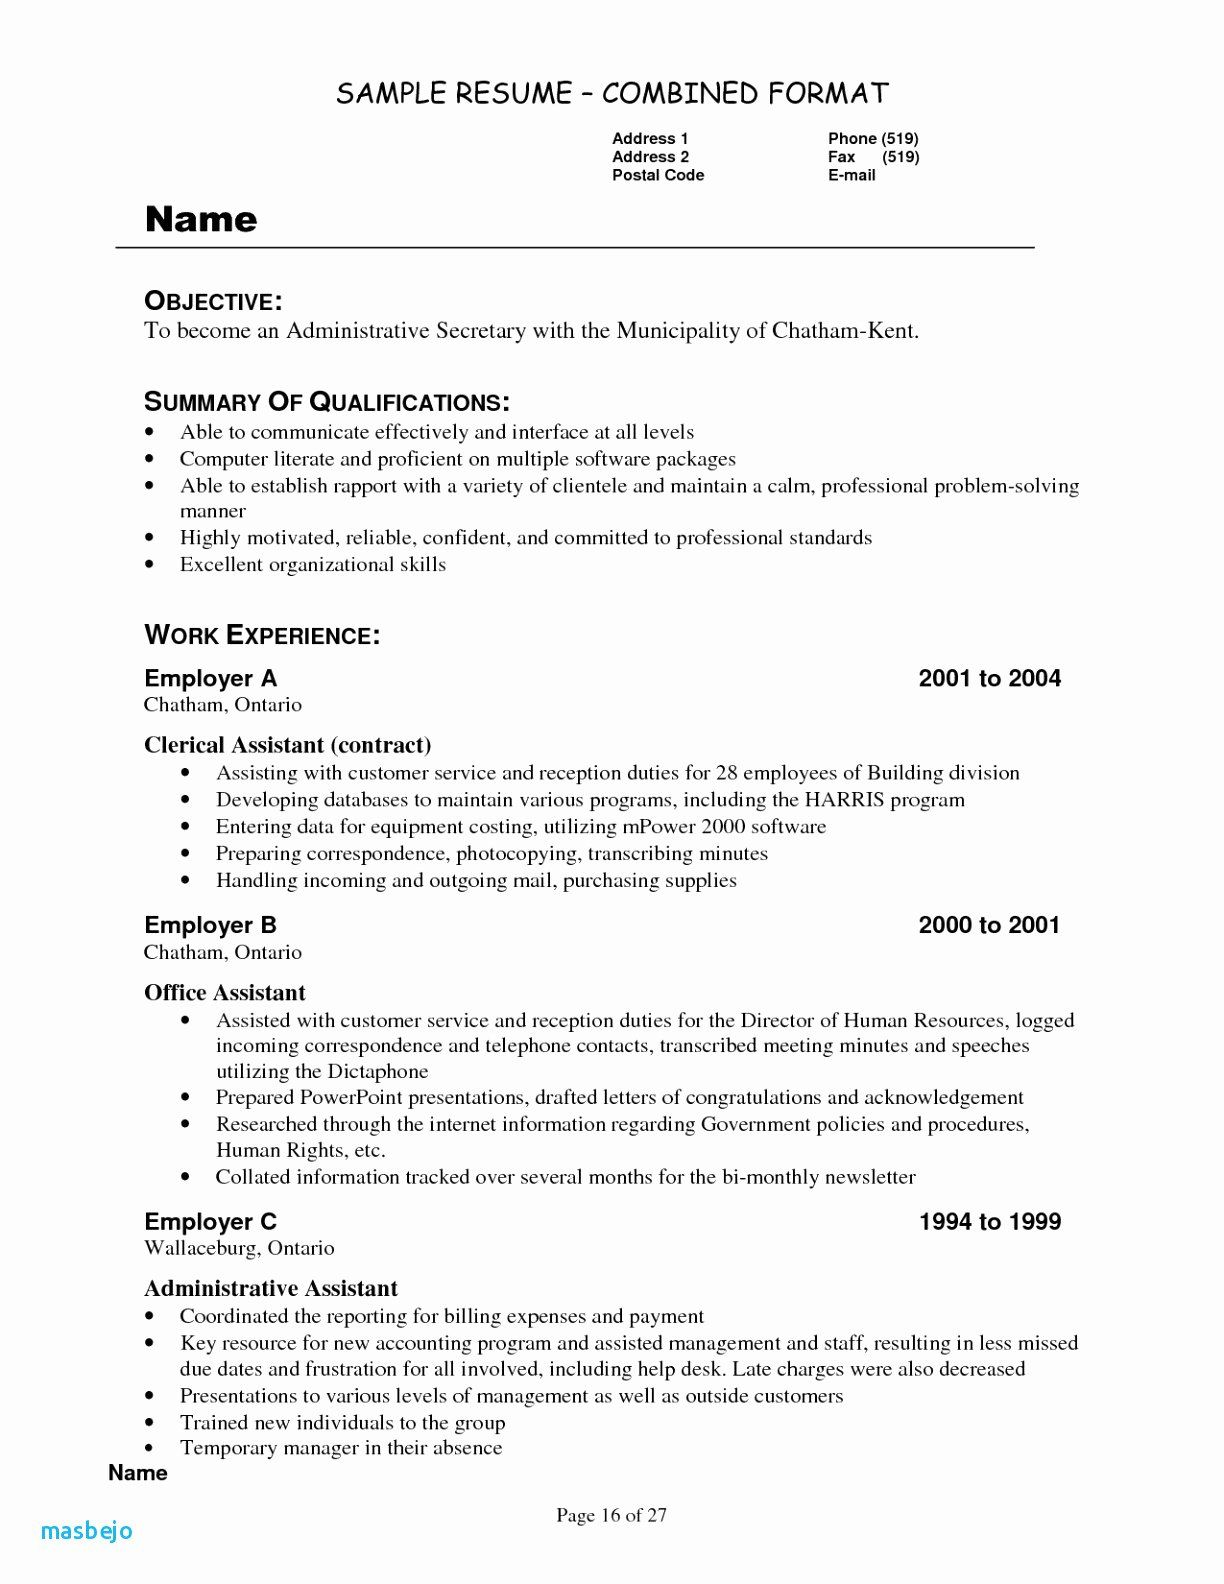 front desk receptionist resume elegant lifeaftermarried just another wordpress site job Resume Front Desk Job Resume